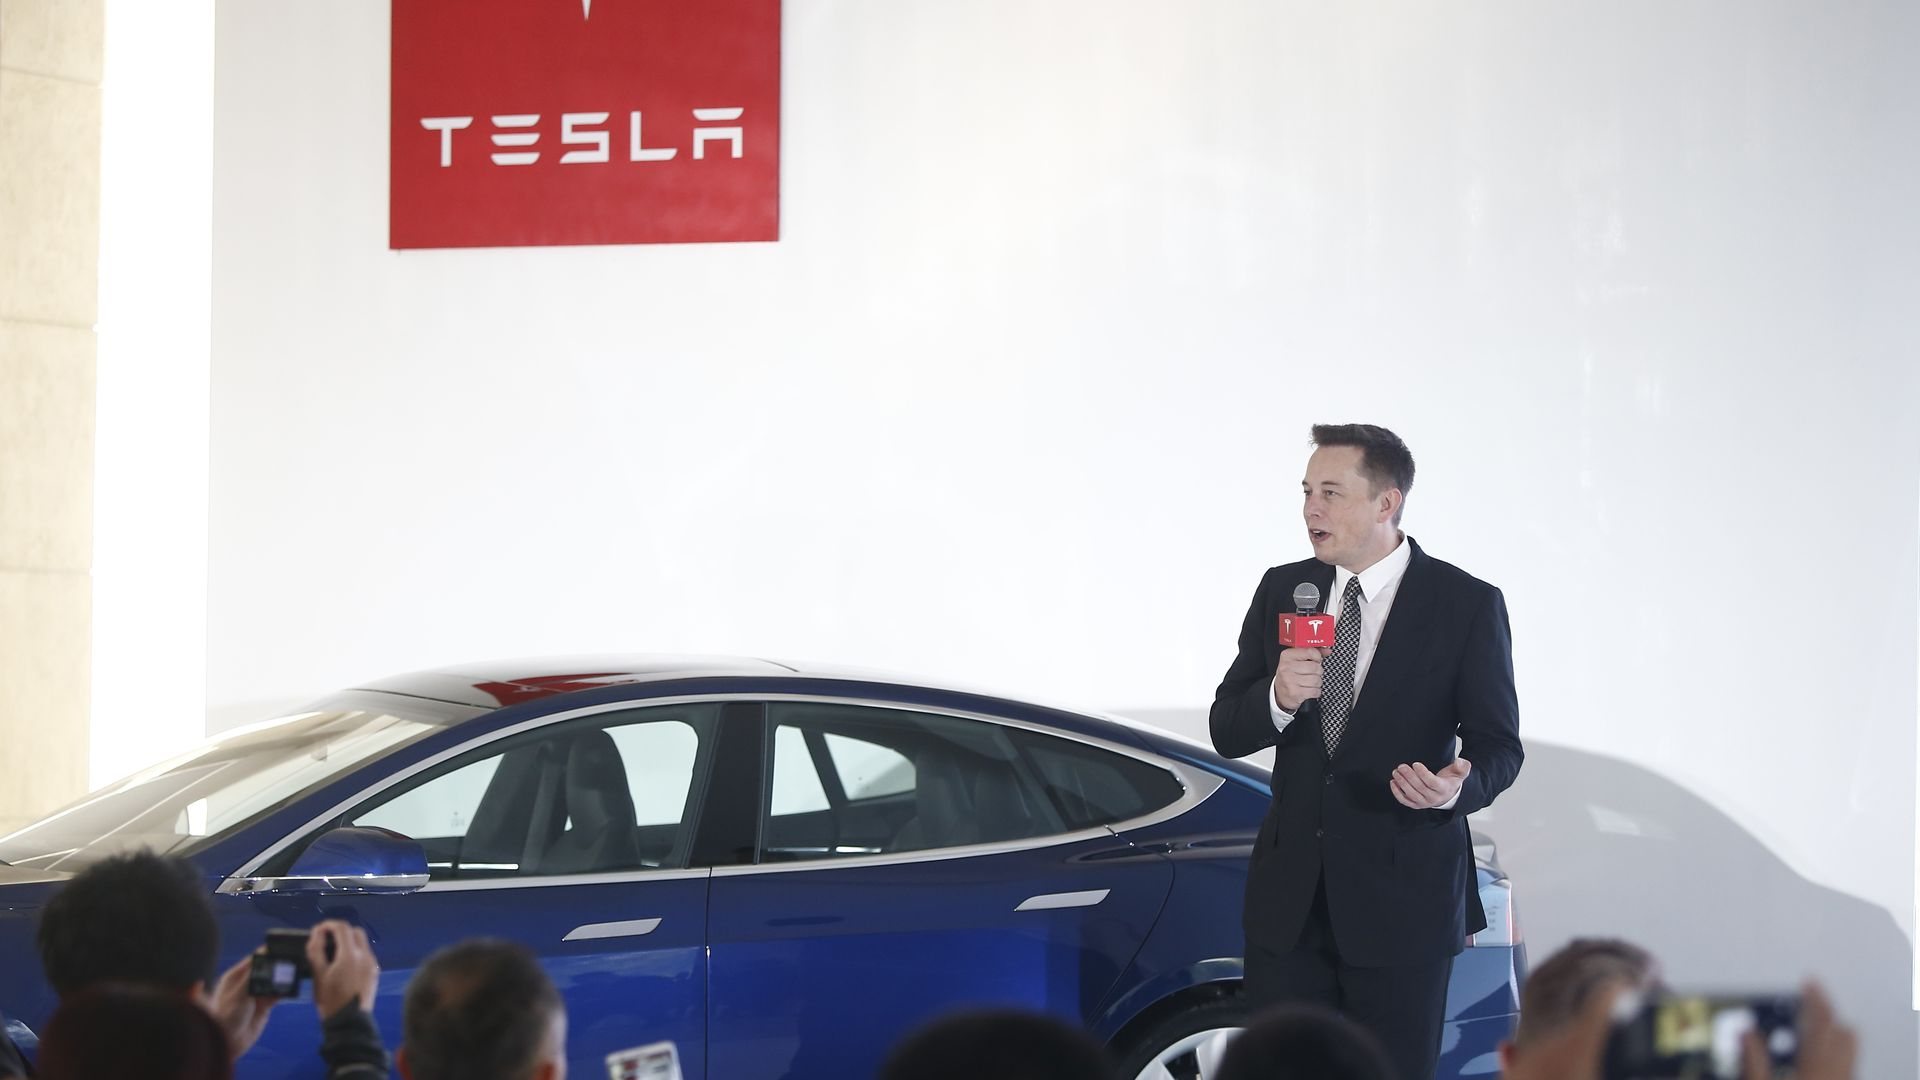 Tesla CEO Elon Musk speaking to a crowd in front of a Tesla car.